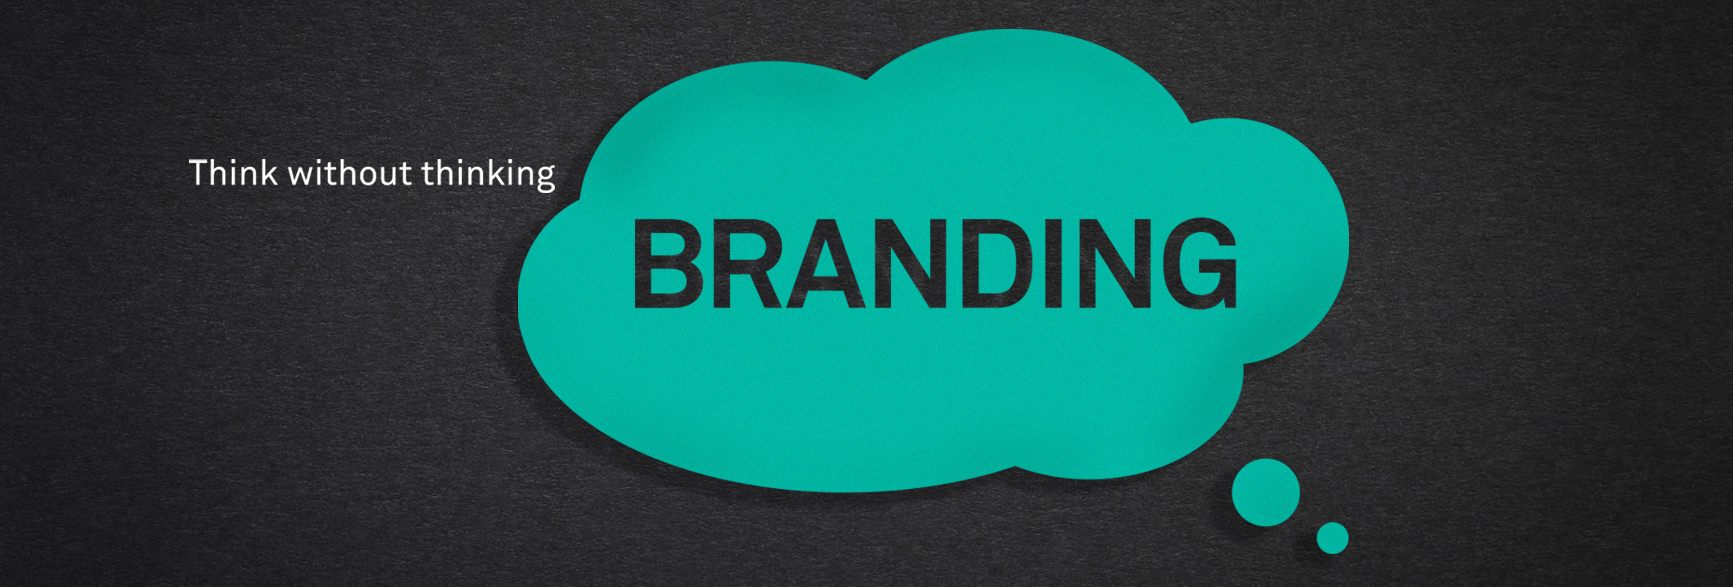 First impressions matter, but branding is a long-term project